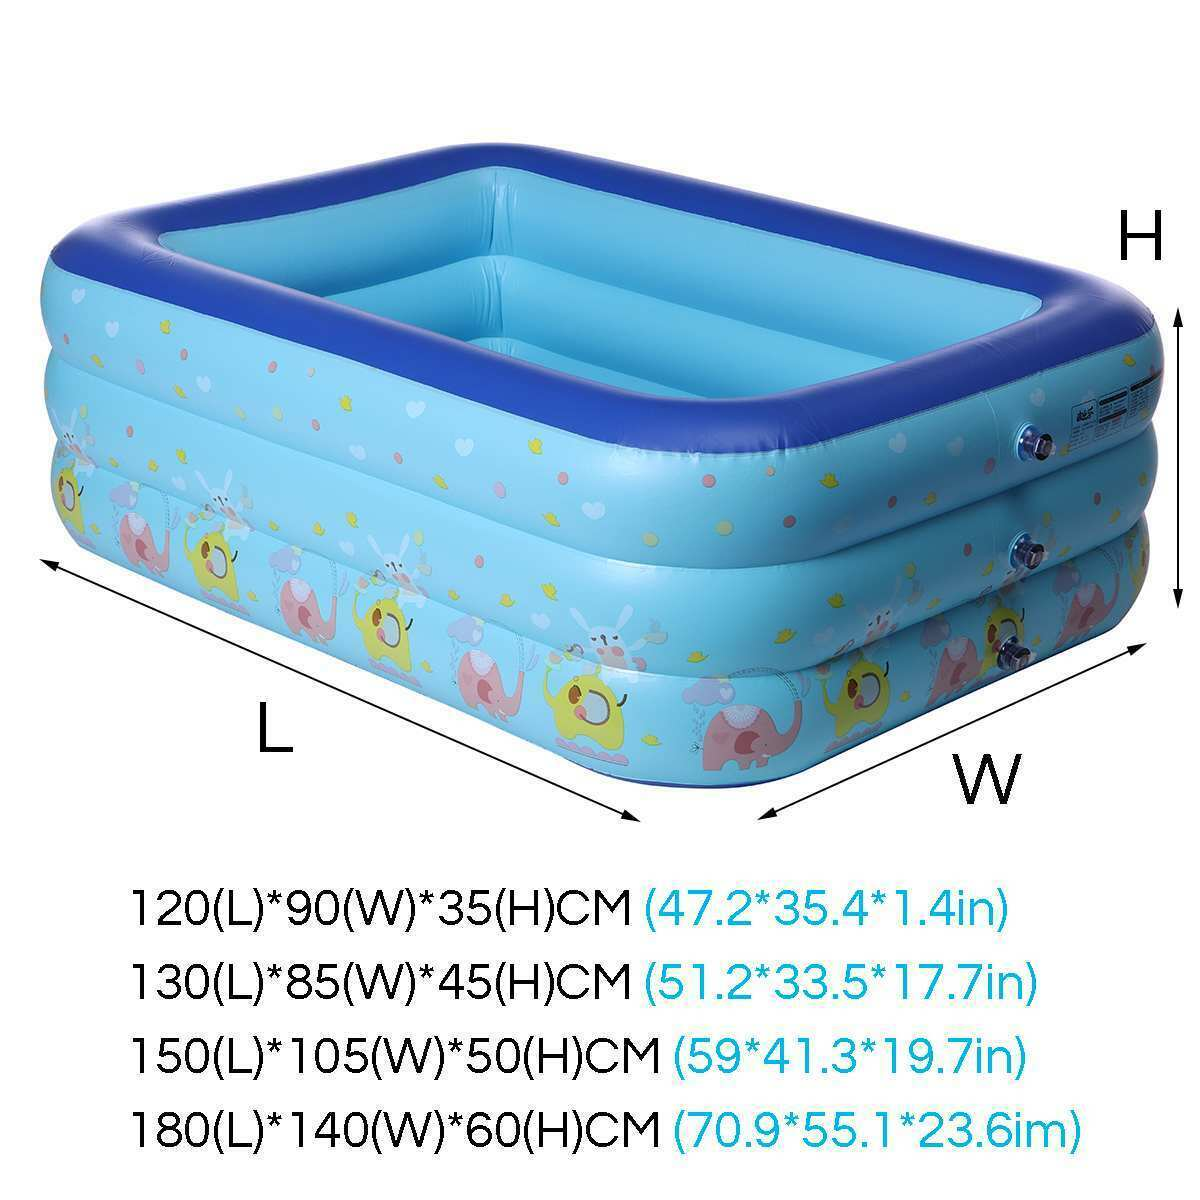 120-180cm Inflatable Swimming Pool Square Kids Children's Use Paddling Pool